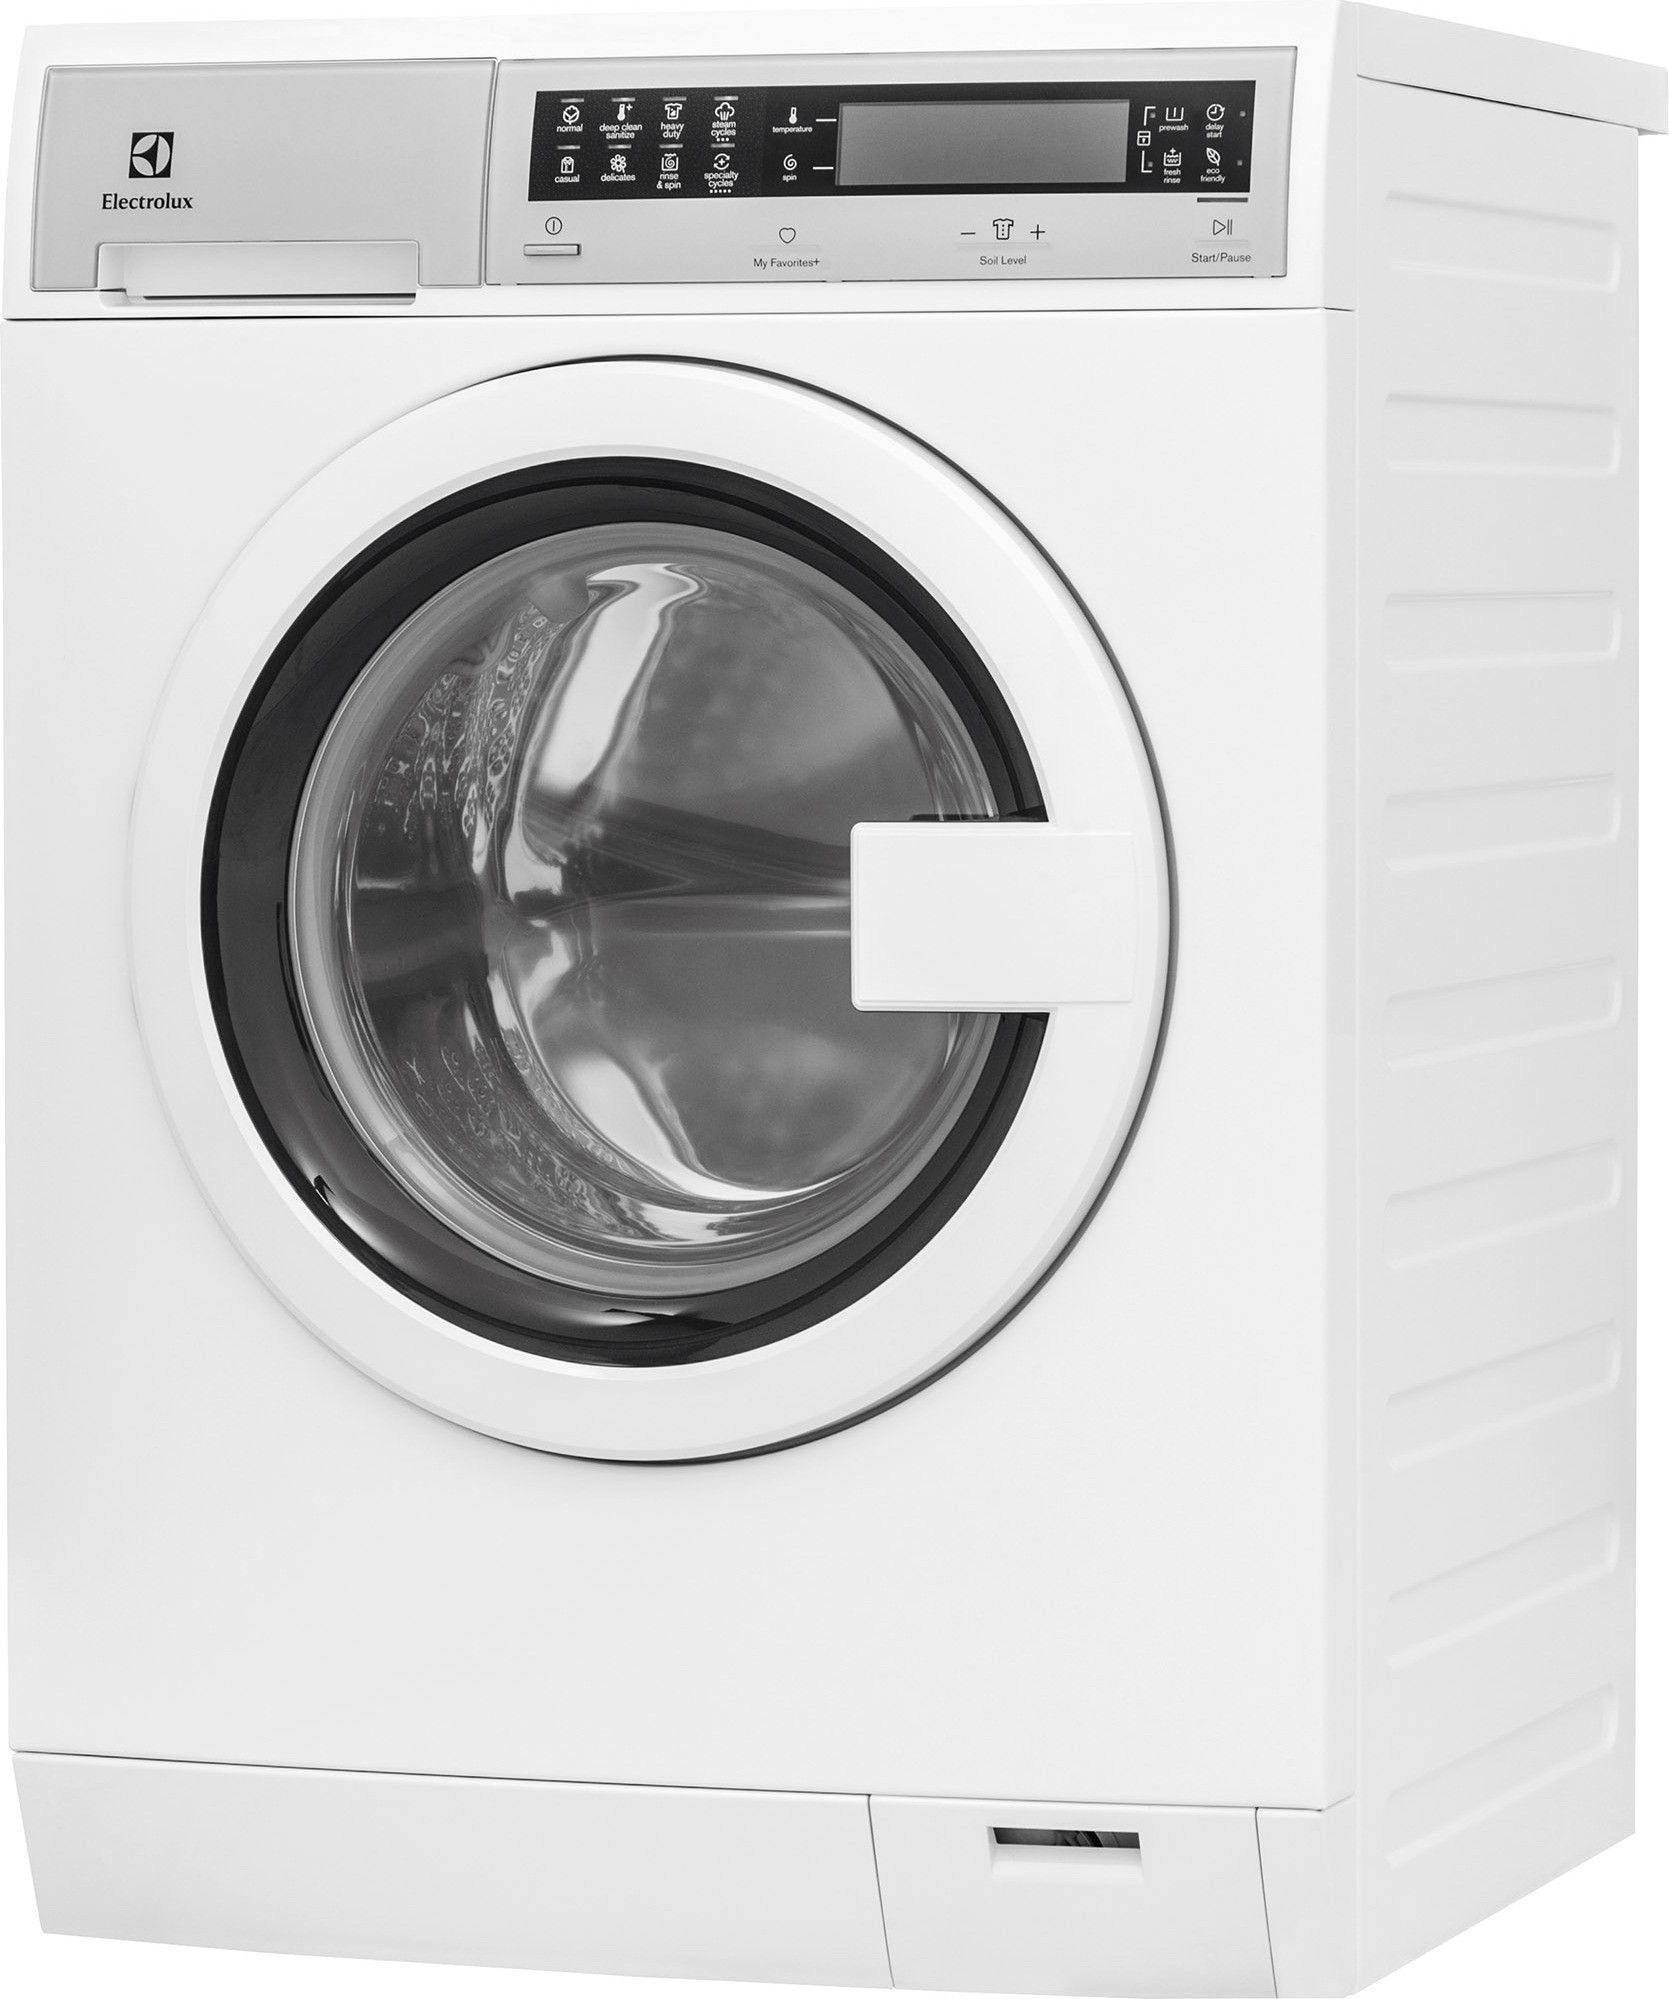 "EFLS210TIW | Electrolux 24"" Washing Machine with Perfect ..."